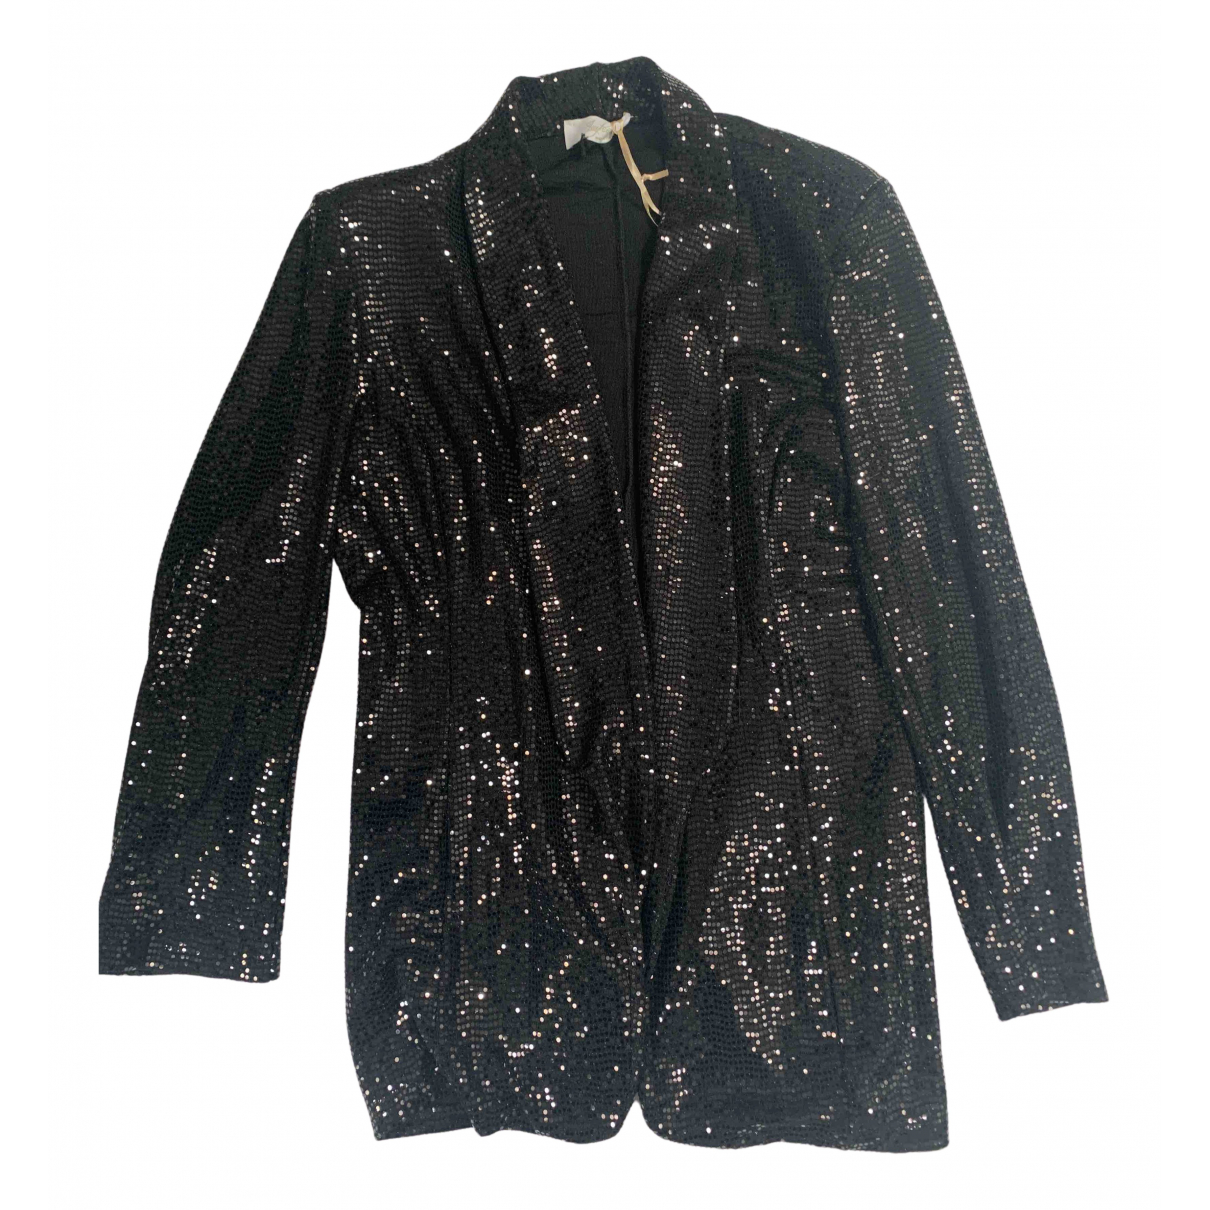 Non Signé / Unsigned N Black jacket for Women One Size International